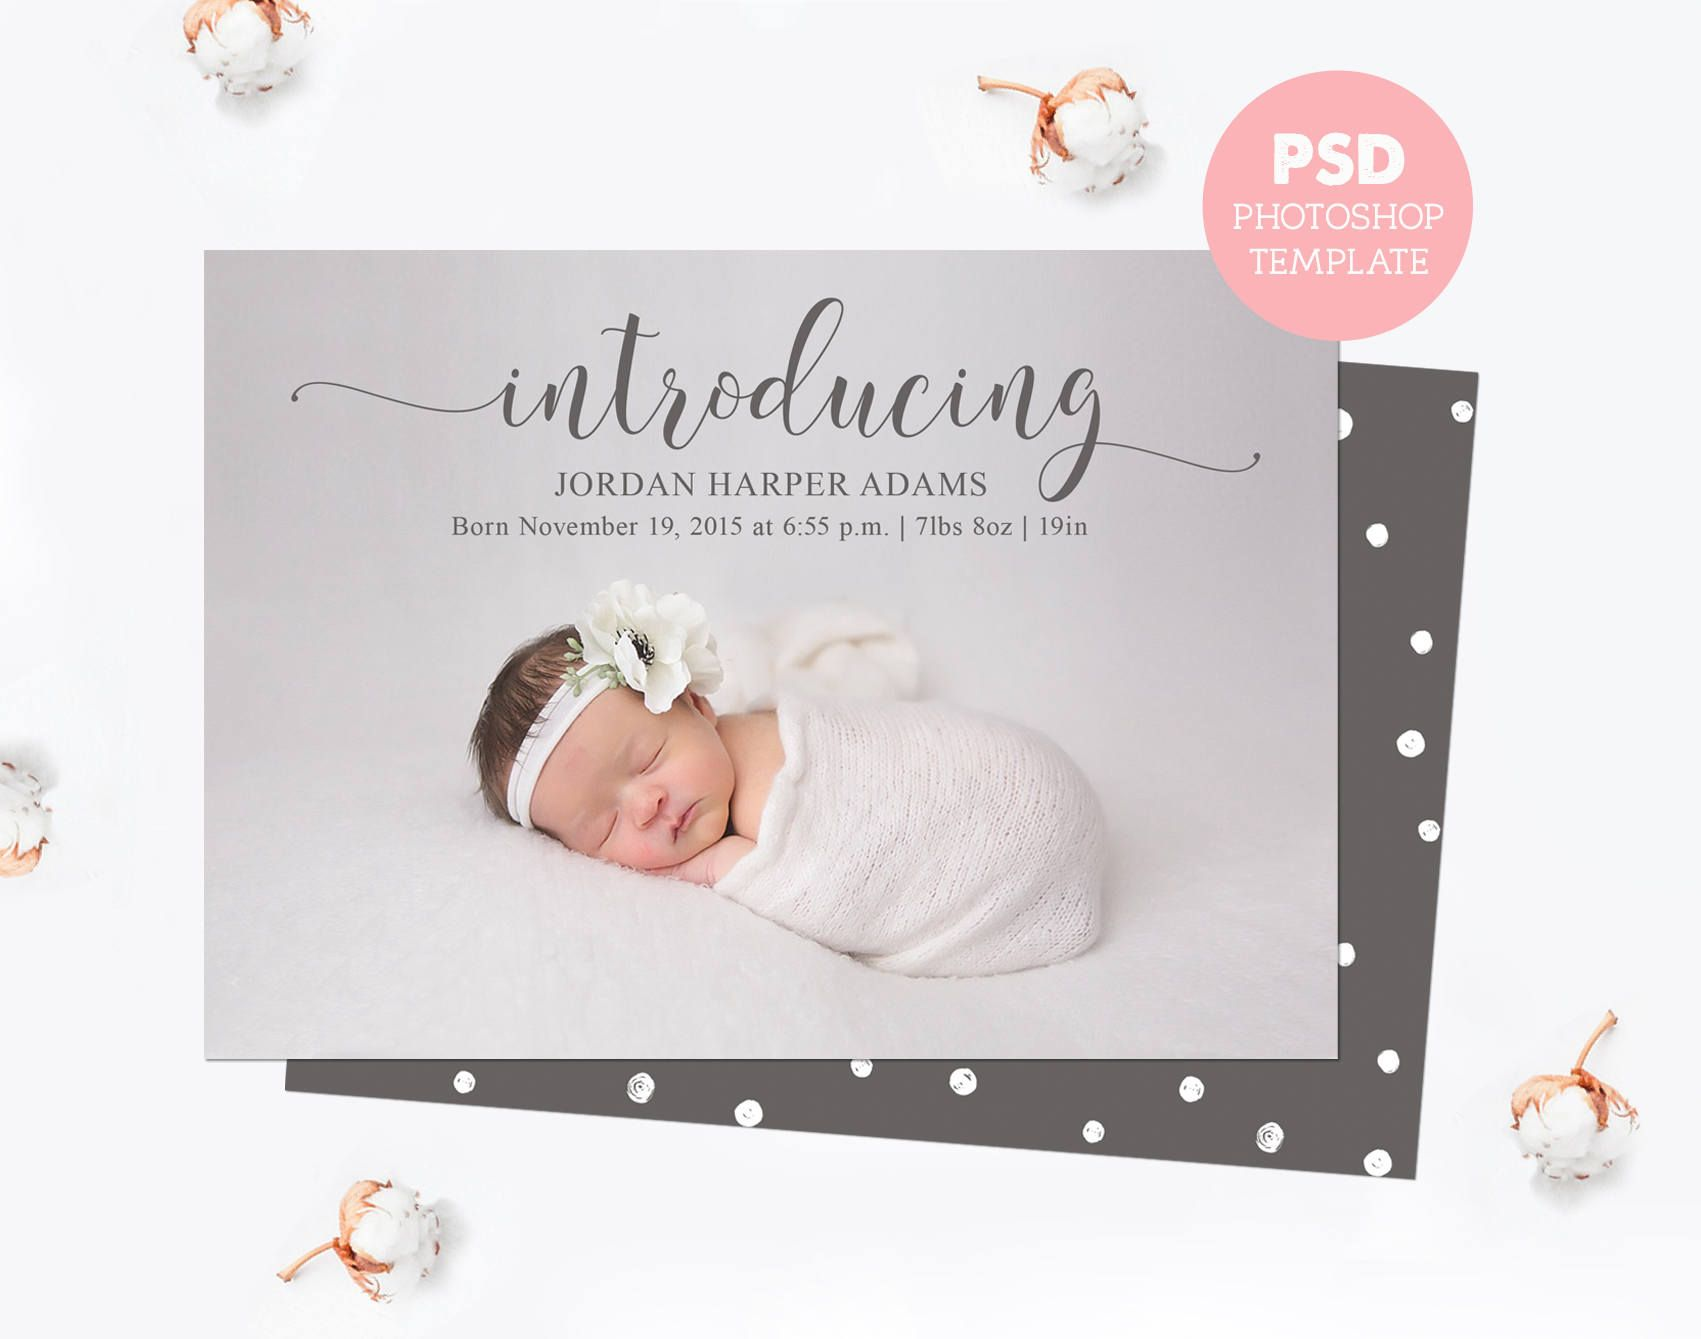 Pin By Pingooin On My Saves Birth Announcement Template Baby Announcement Cards Newborn Announcement